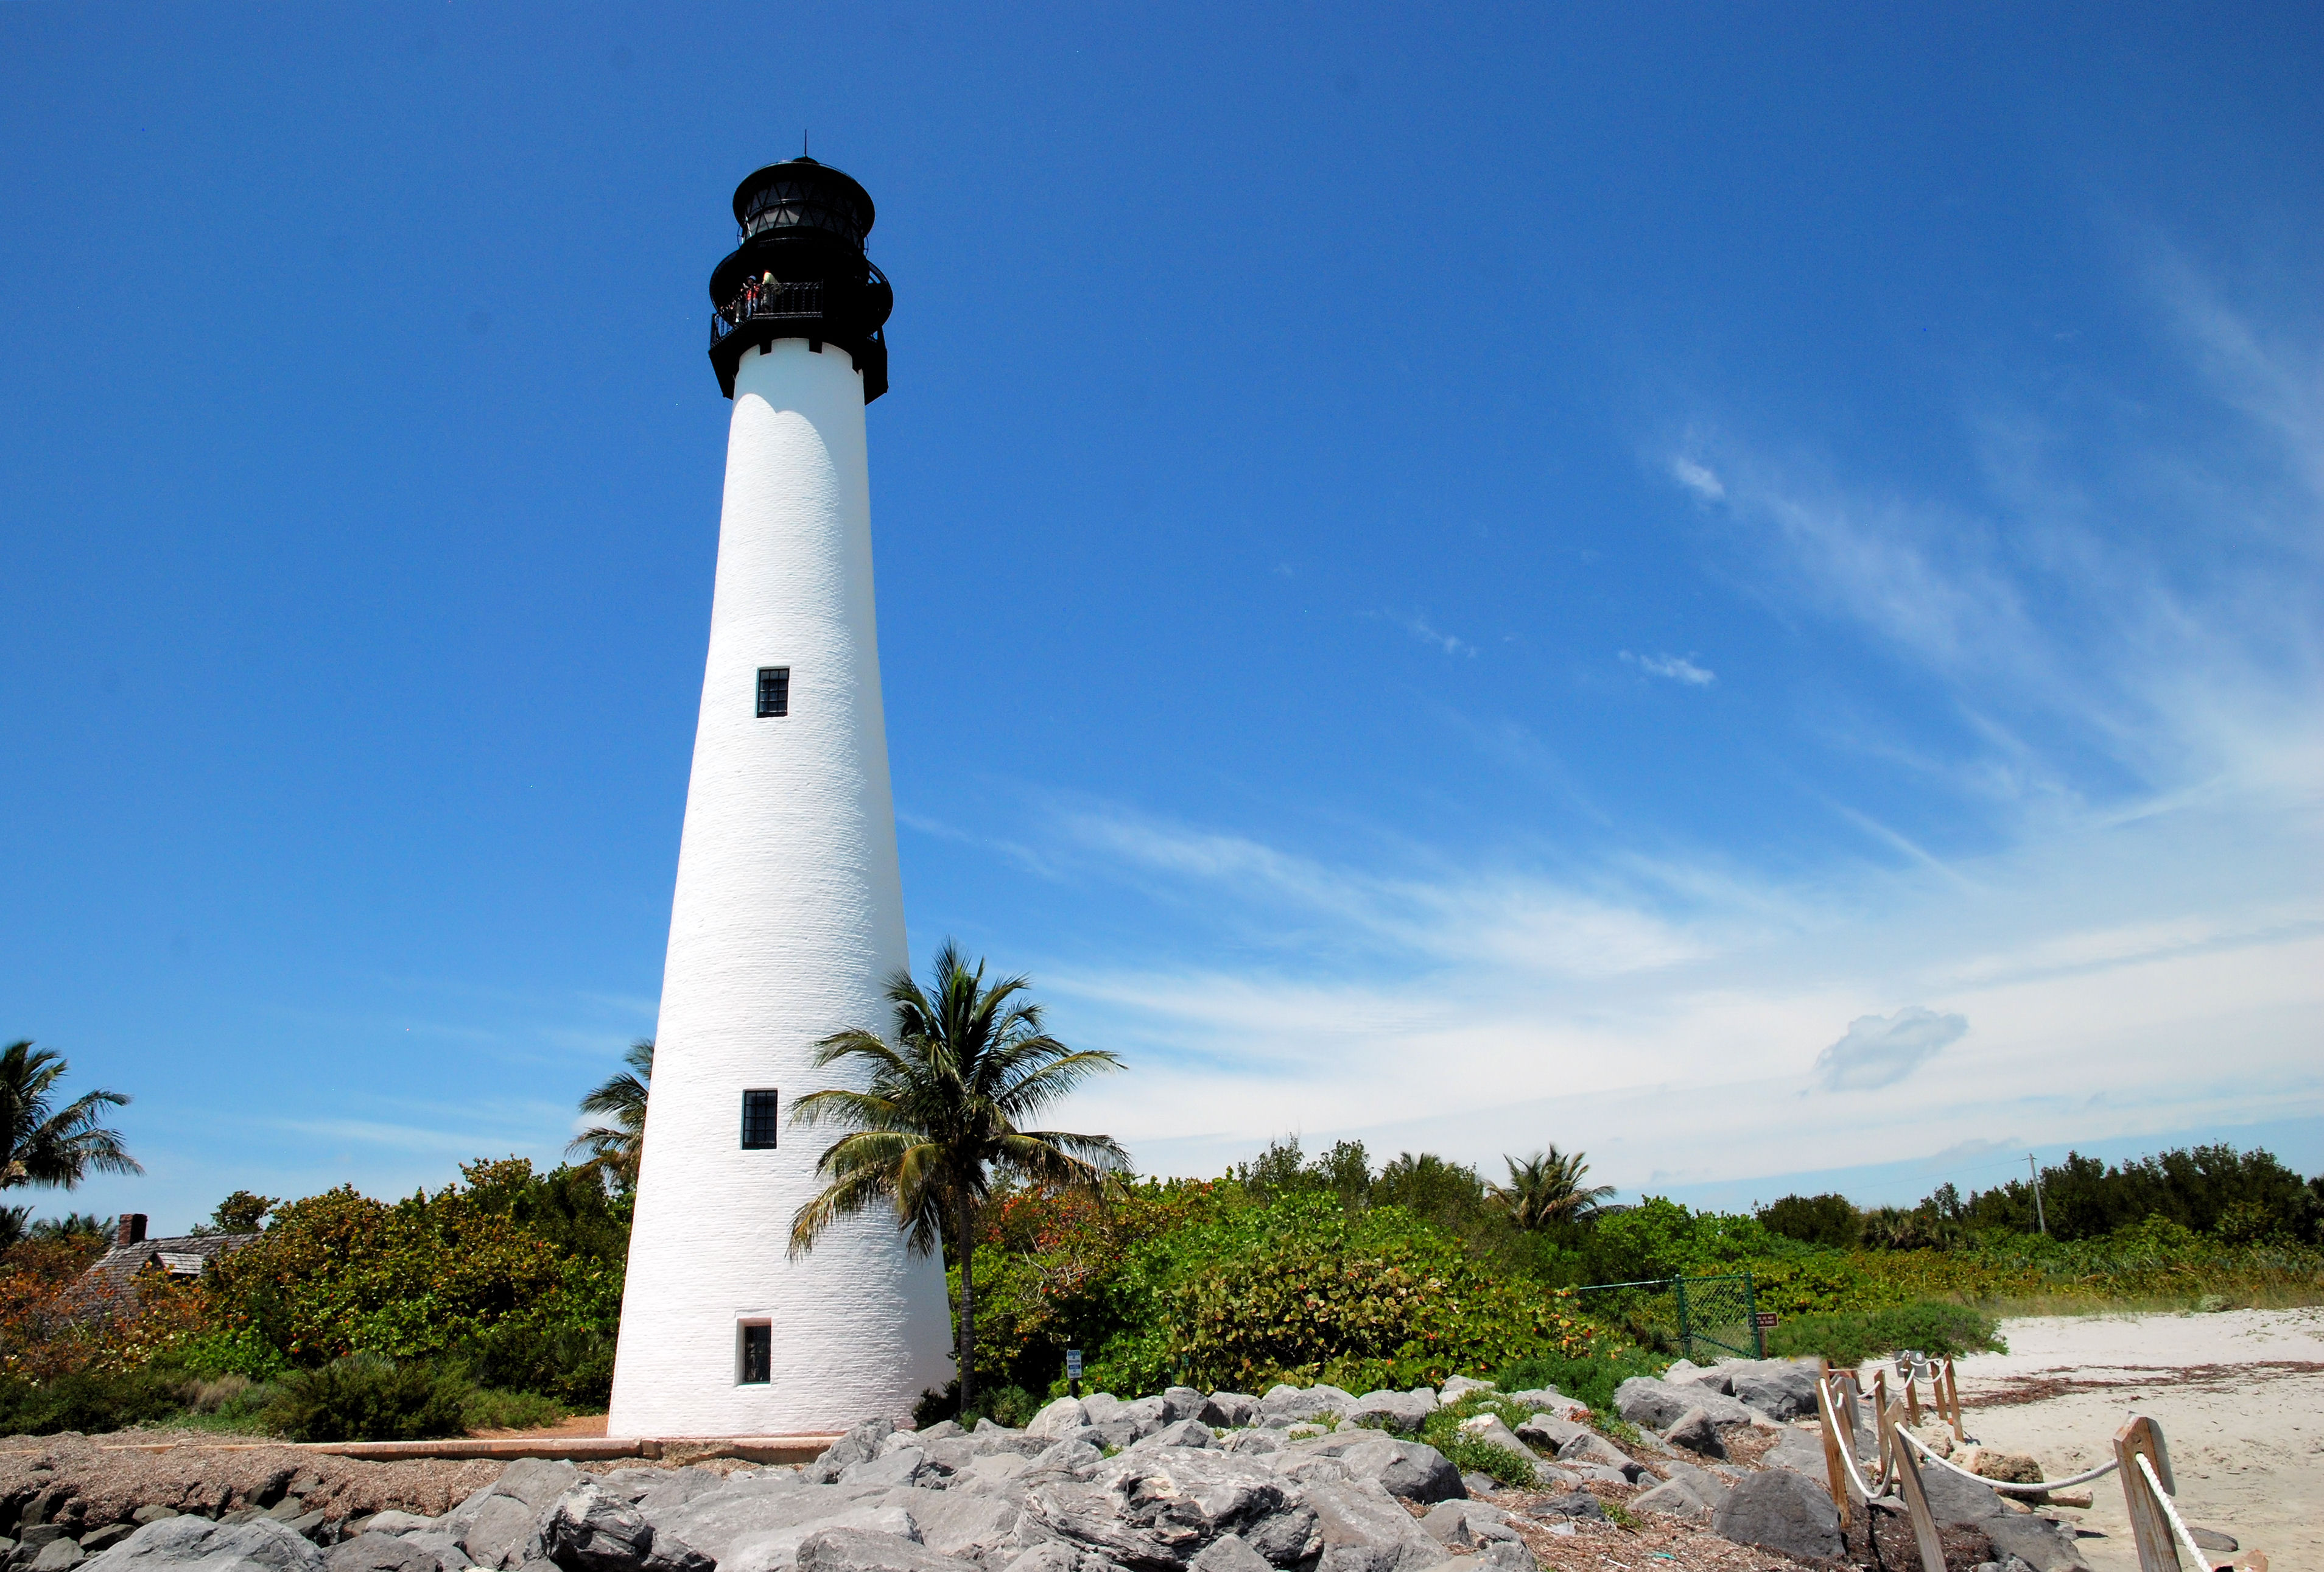 Cape Florida Lighthouse, Beach, Clouds, Landscape, Lighthouse, HQ Photo